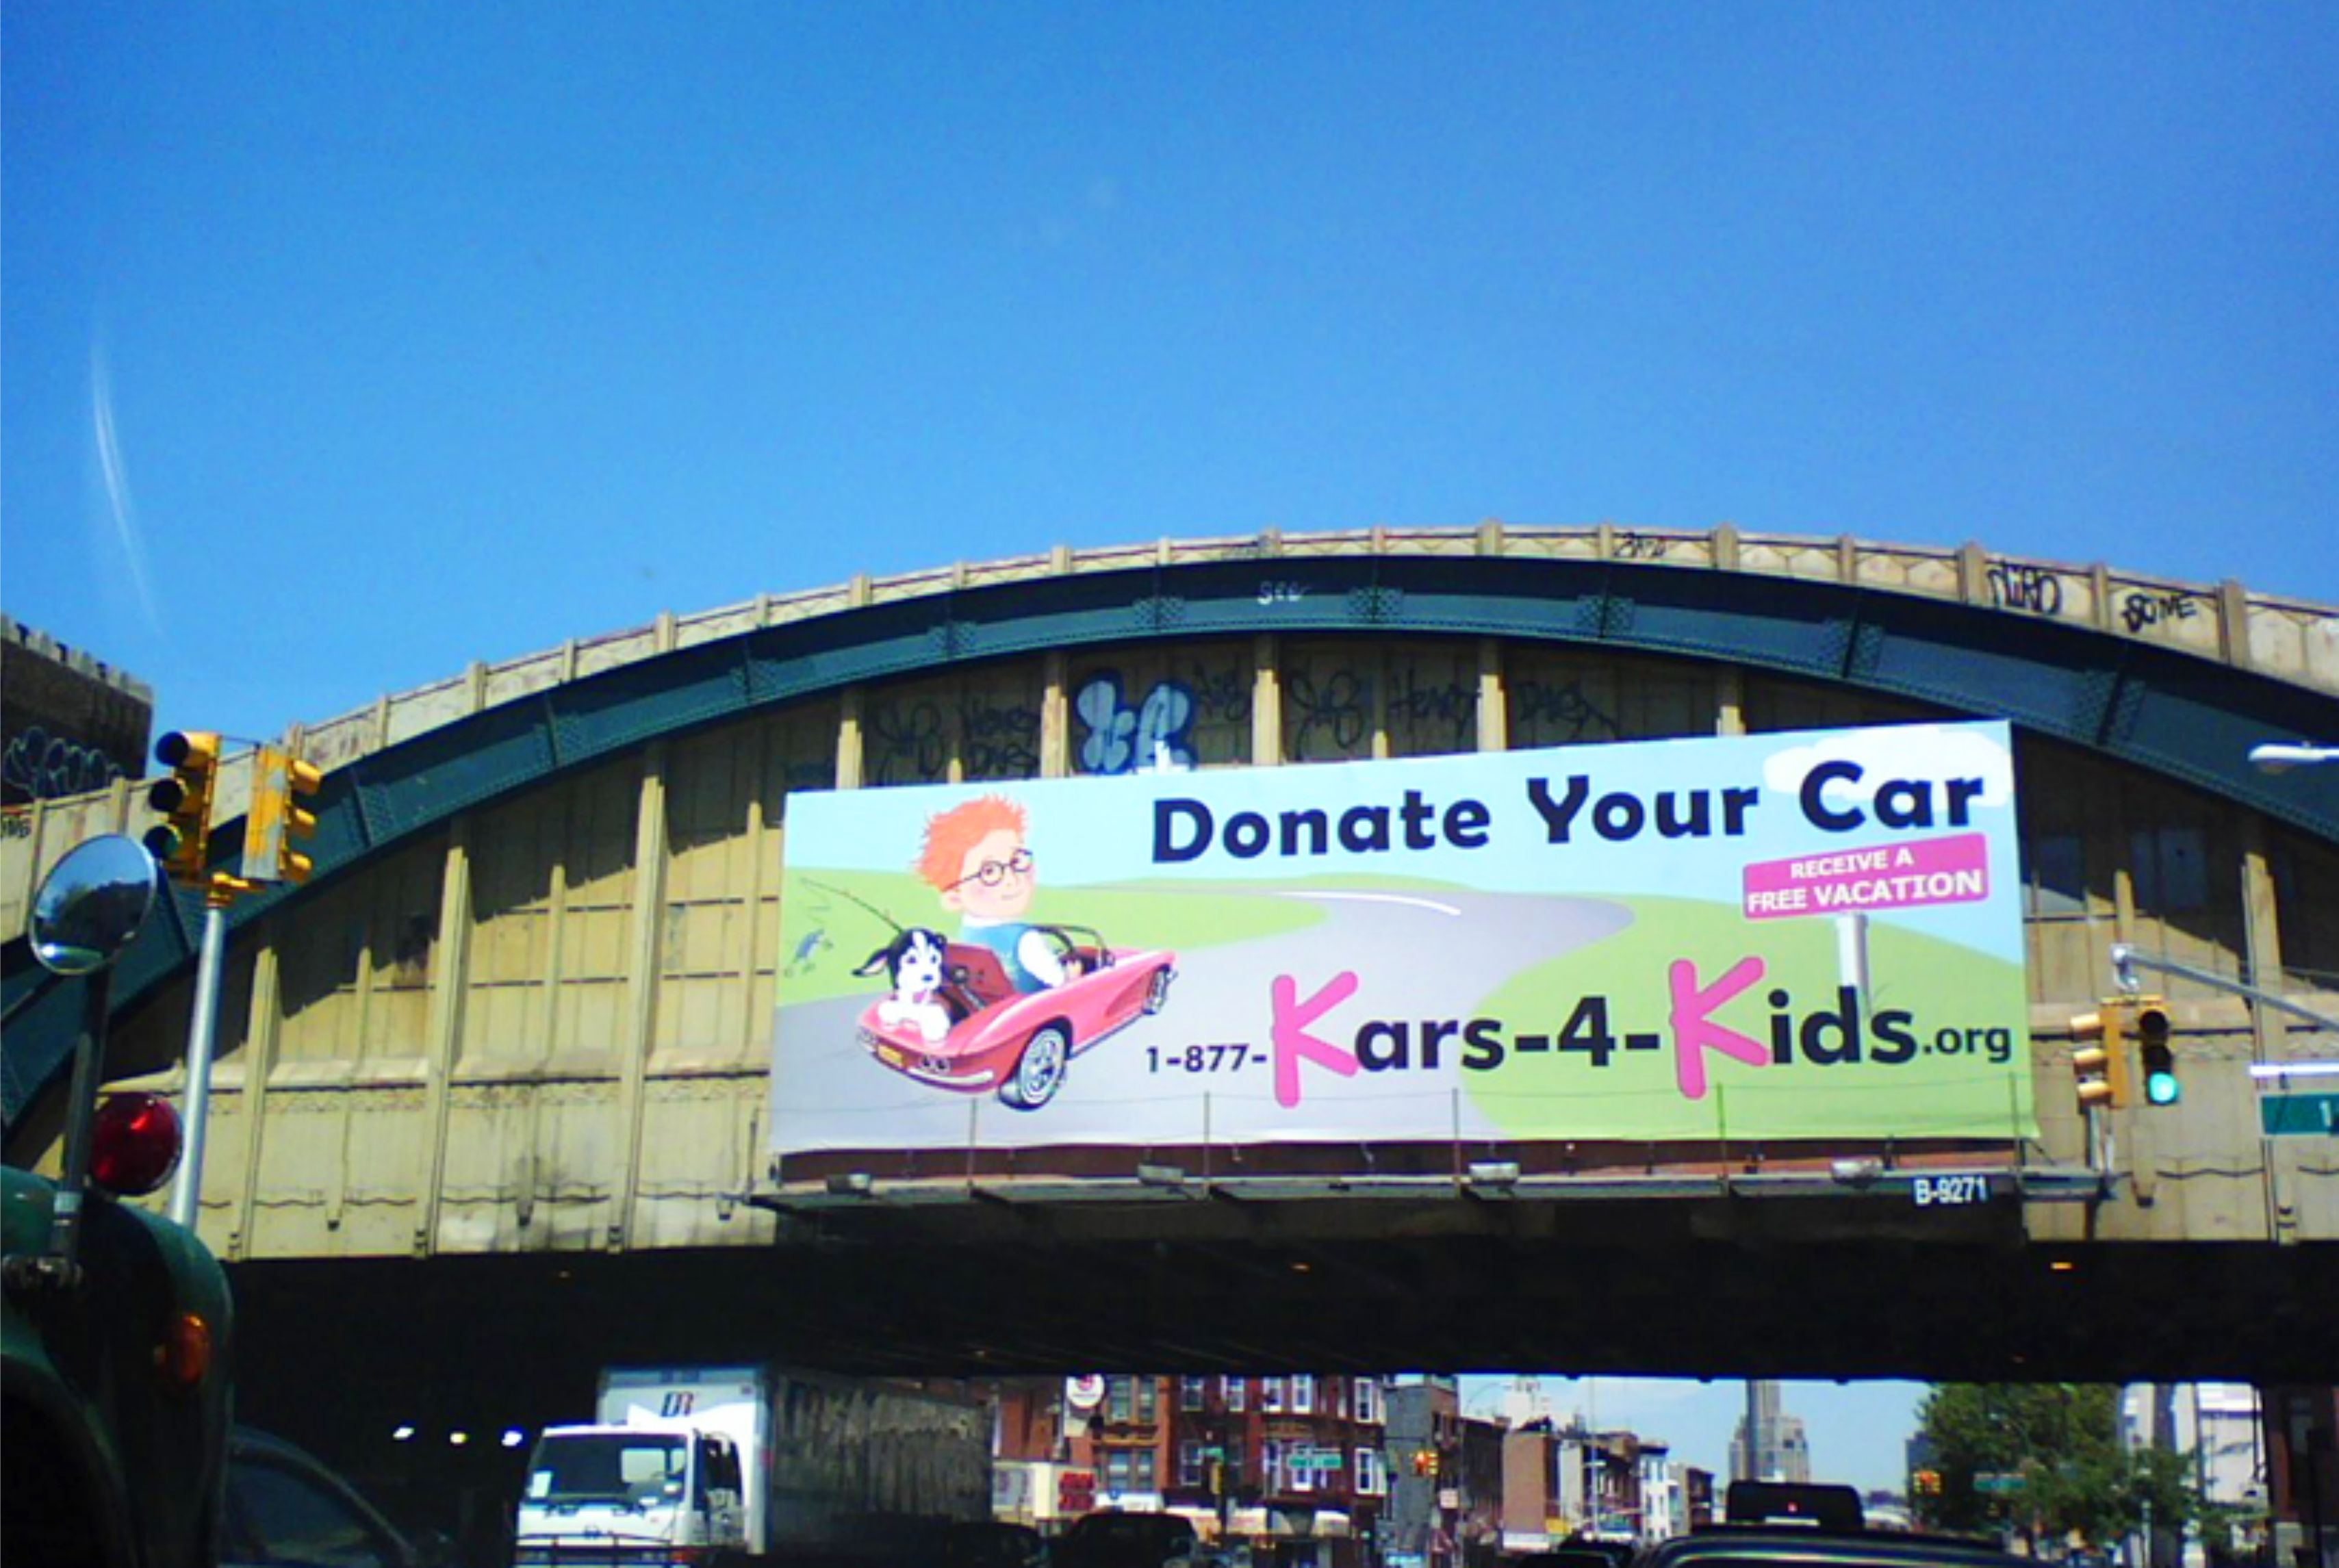 Donate your car for kids 23